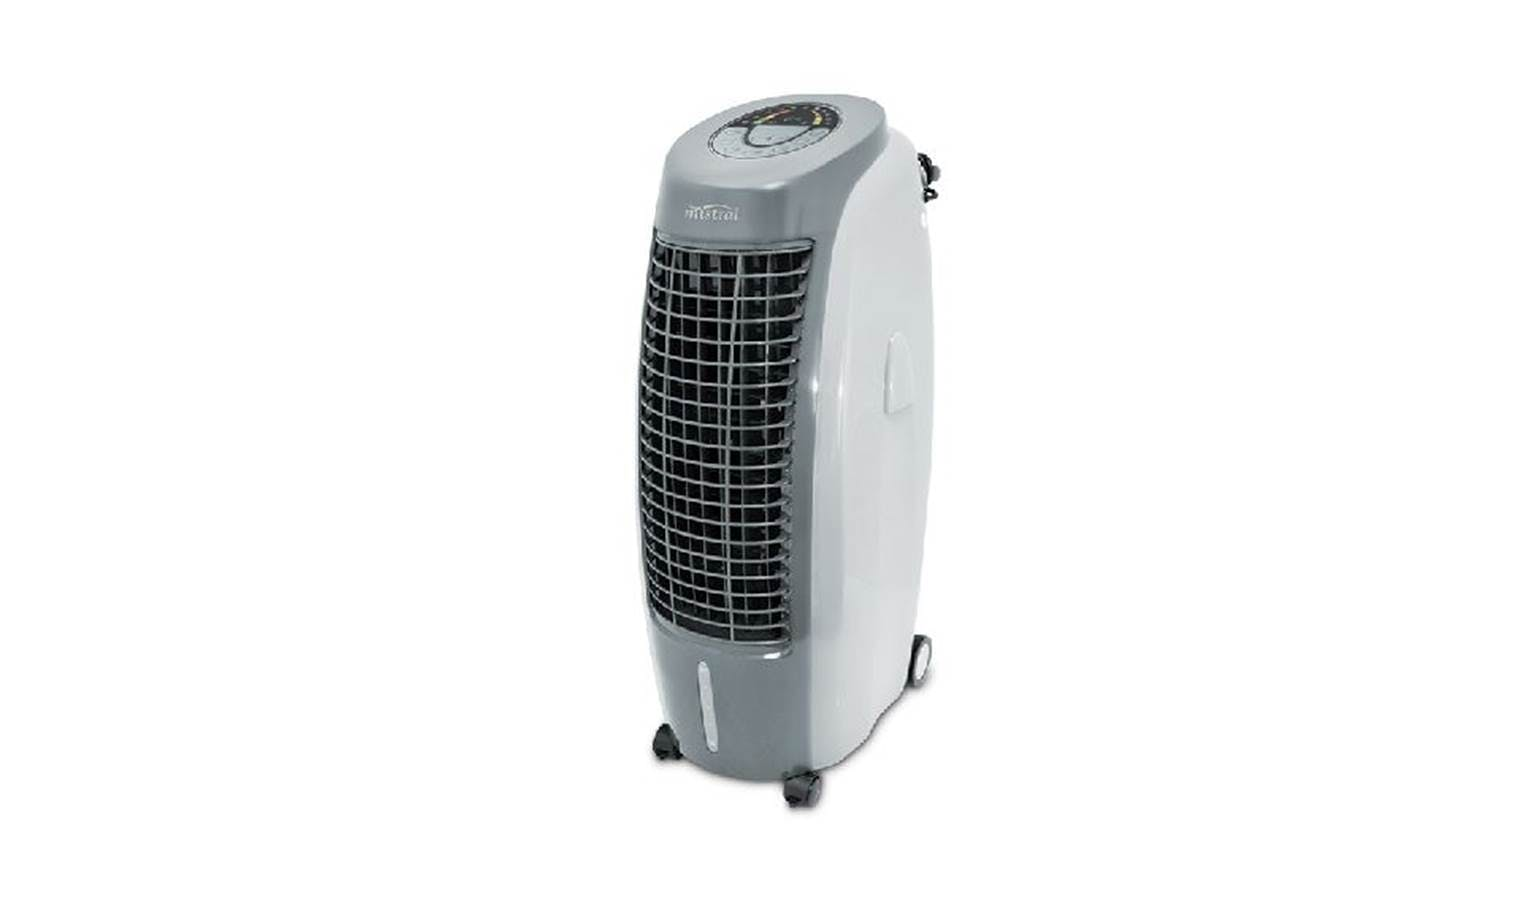 Mistral MAC1600R 15L Portable Evaporative Air Cooler with Remote ...